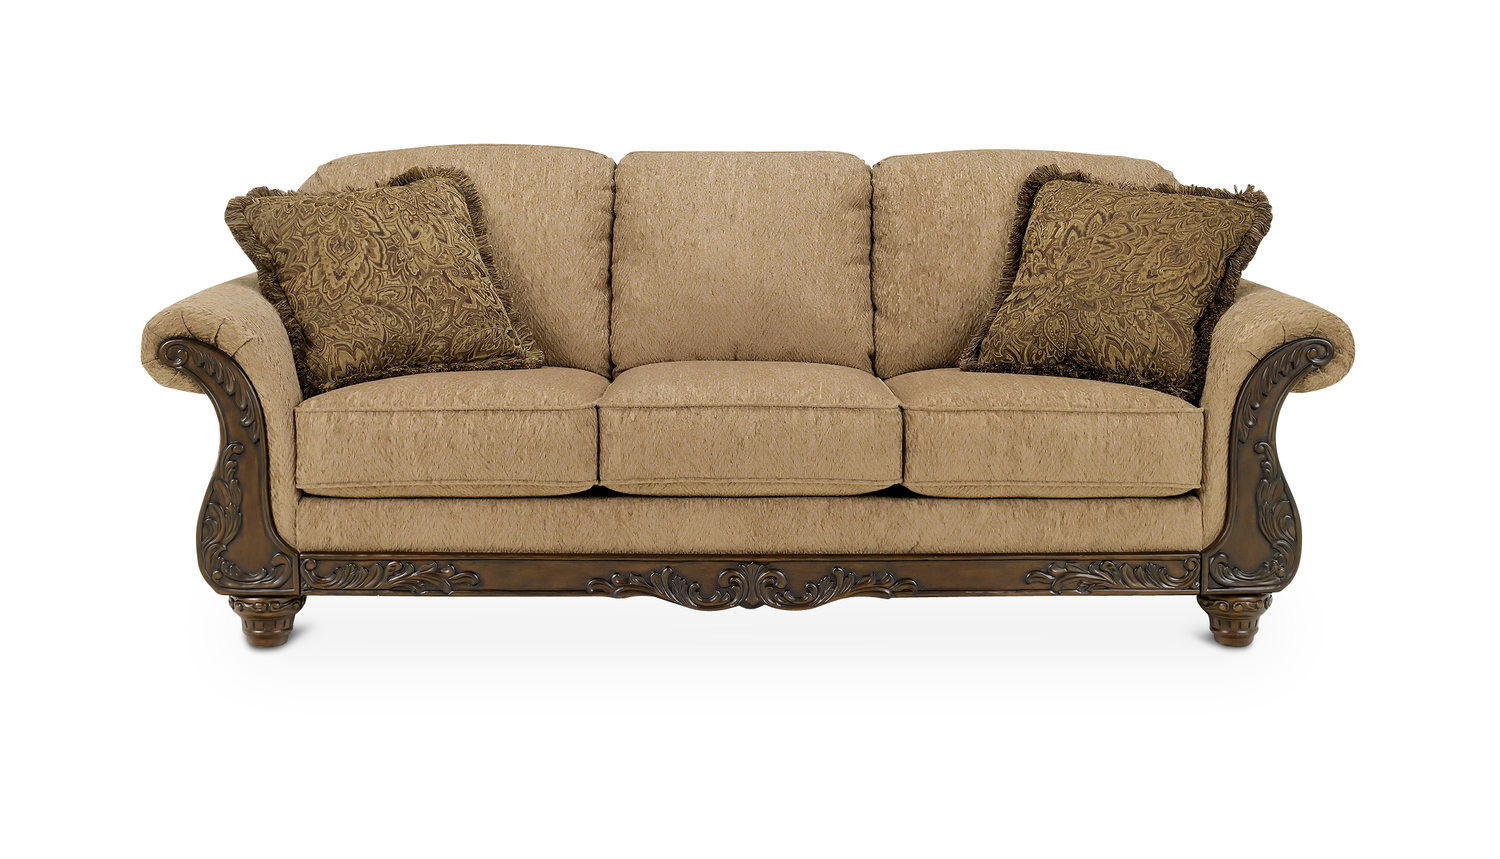 Sofas And Chairs Bloomington Mn Refil Sofa